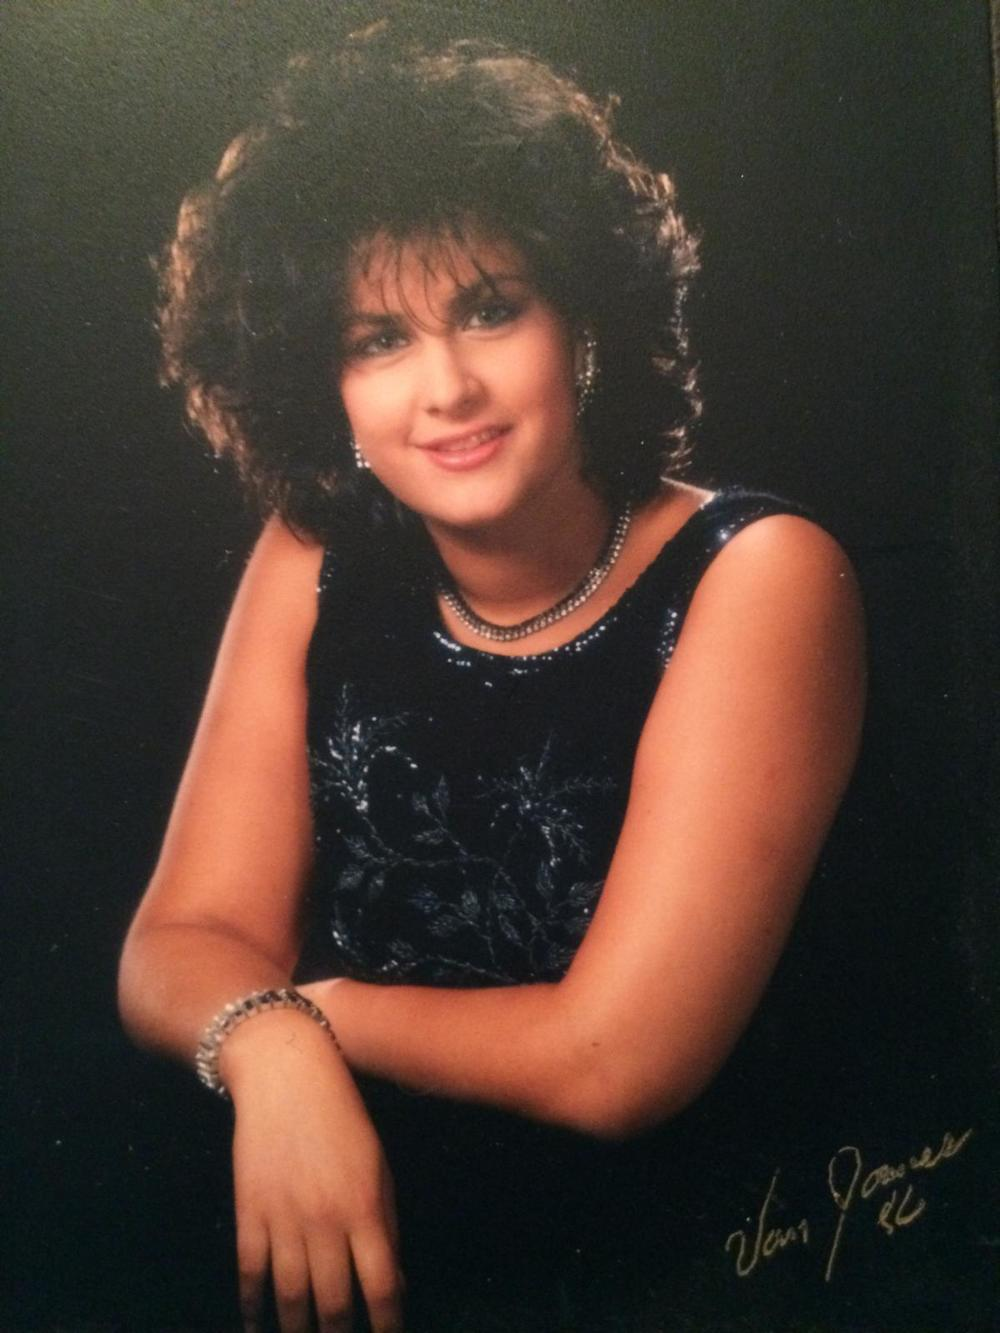 Jeannie in 1986...wearing a vintage beaded 1950's numbter.  Ready for the red carpet, and at such a tender age!